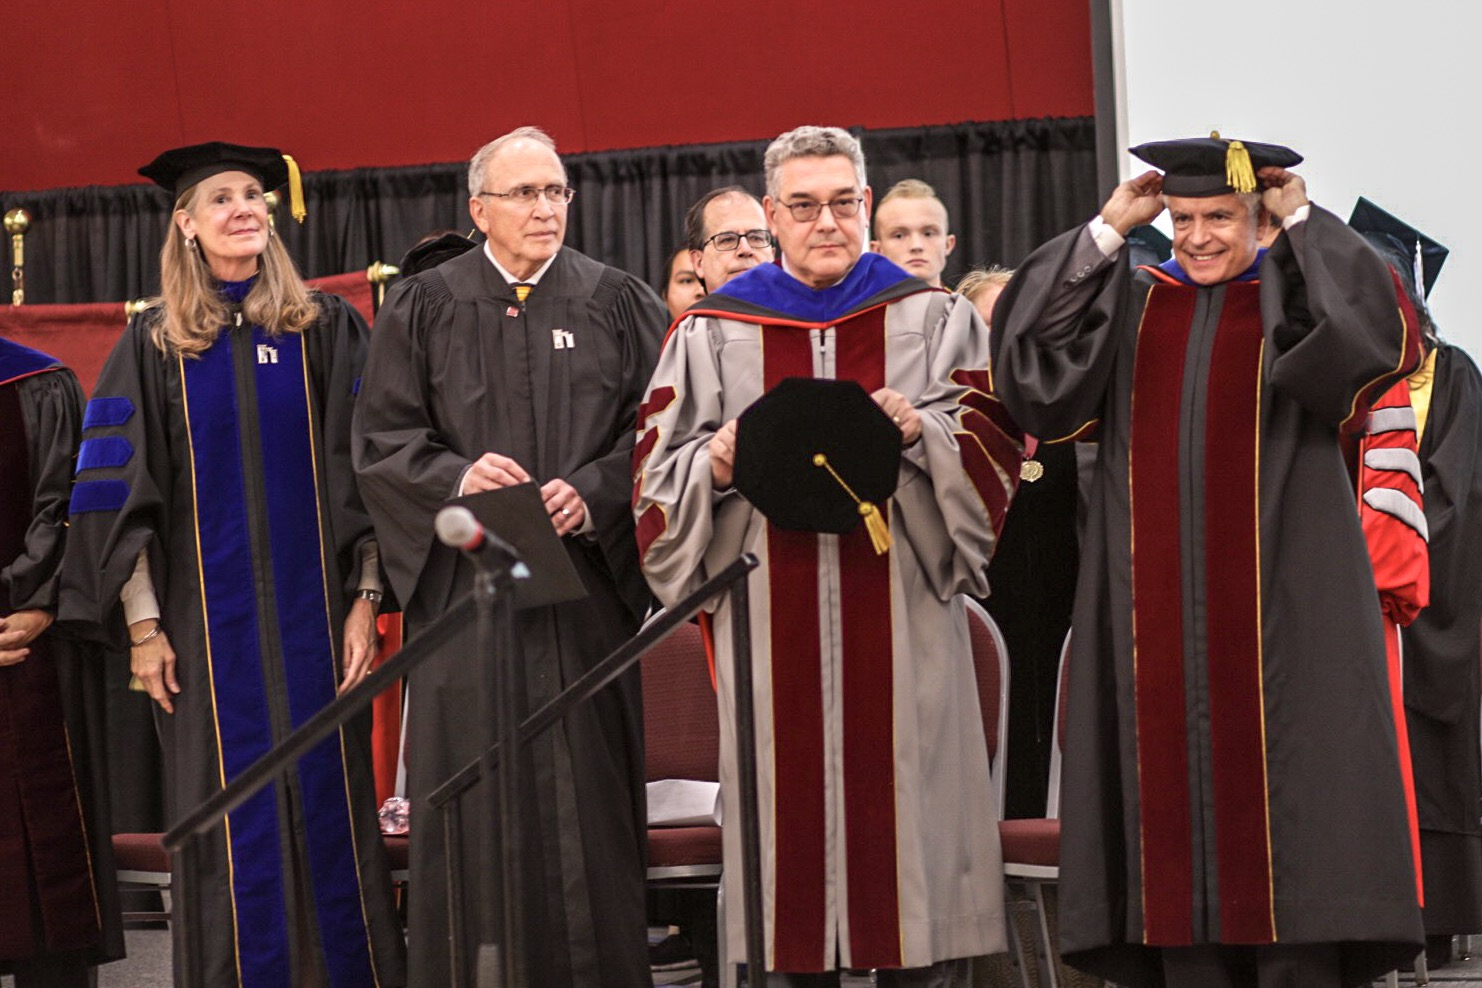 President John D. Floros and Chancellor Dan Arvizu stand with colleagues wearing Academic Regalia at NMSU inauguration.